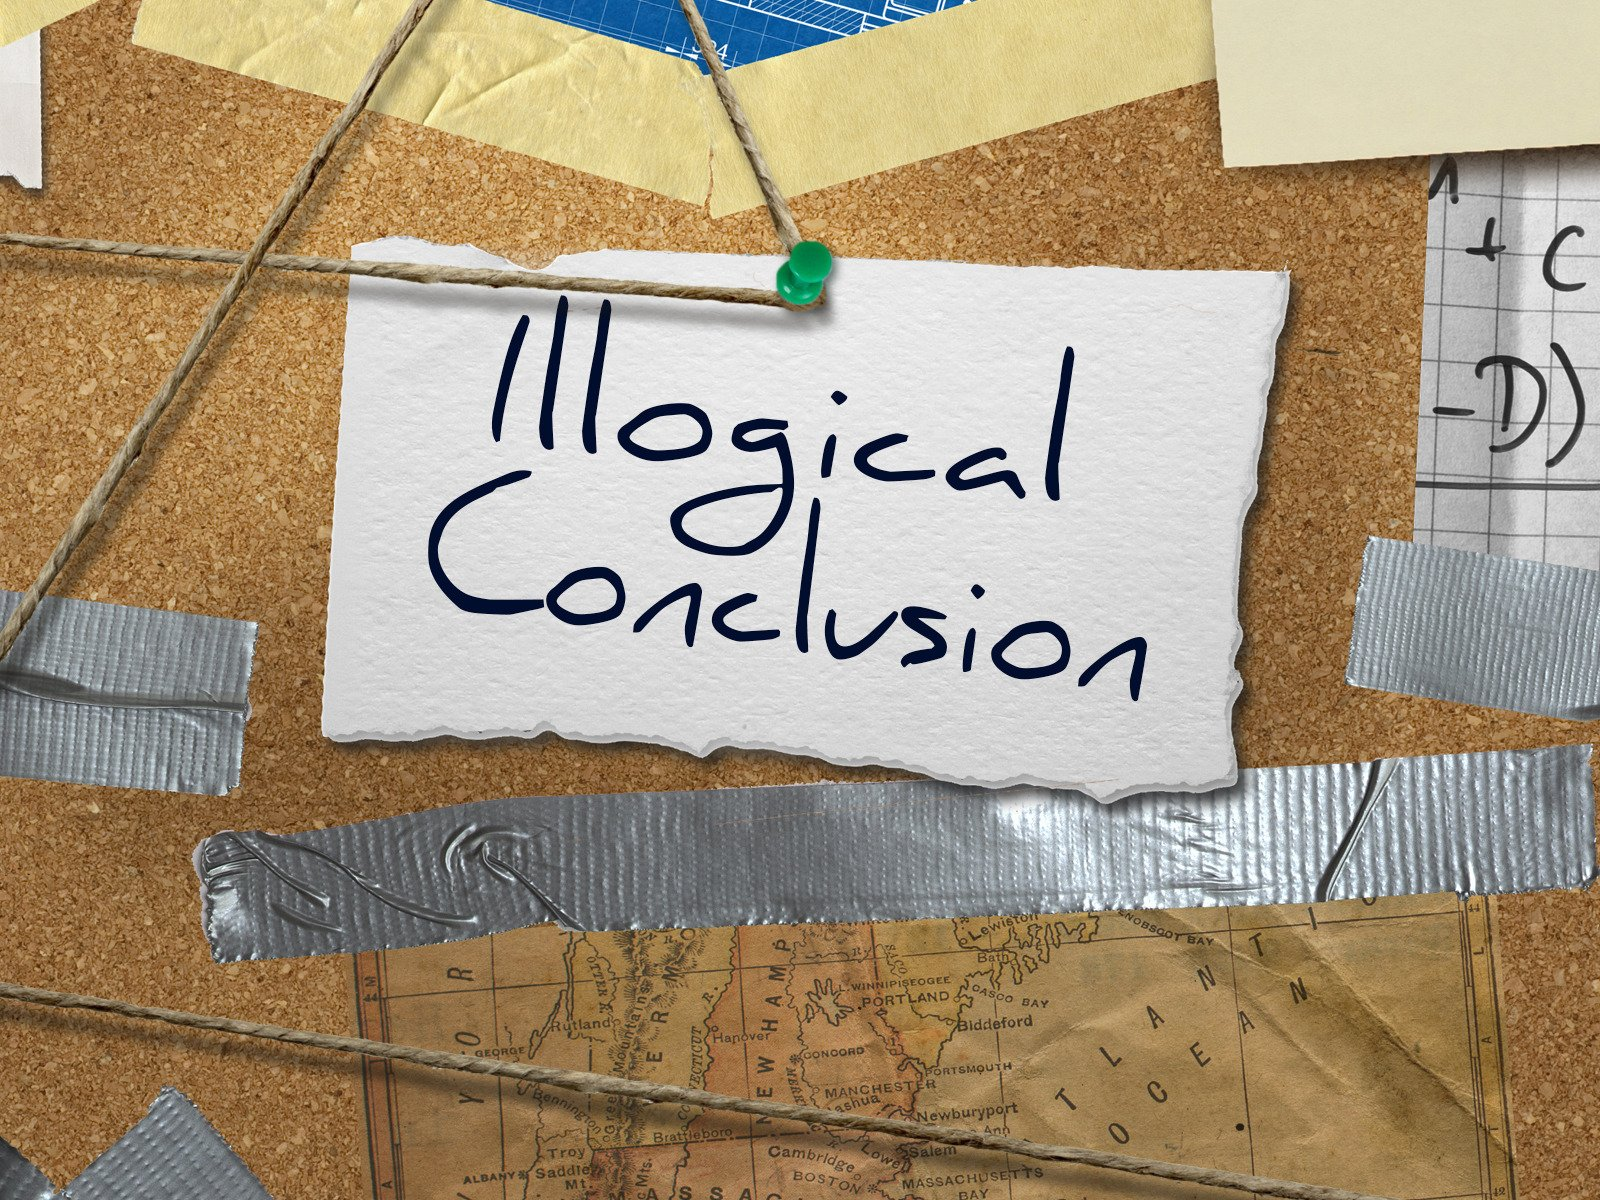 Illogical Conclusions - Season 1